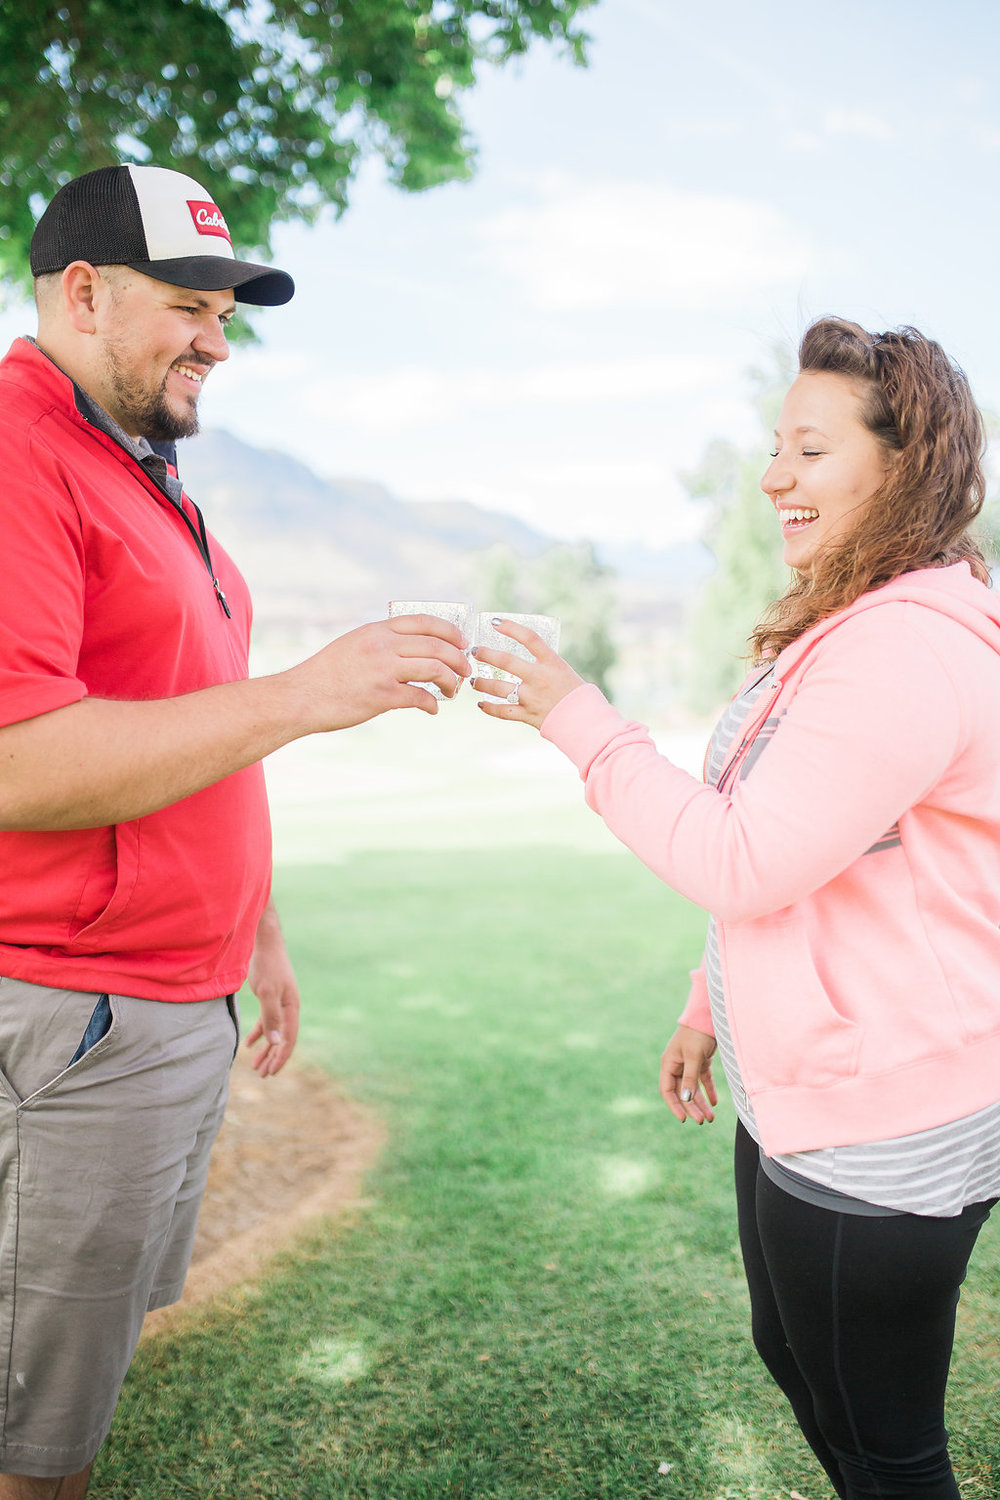 Golf Course Proposal | 9th Hole Proposal | Golf Course Photo Session | Beautiful Engagement Session | Seattle Wedding Photographer | Surprise Proposal | Cheers